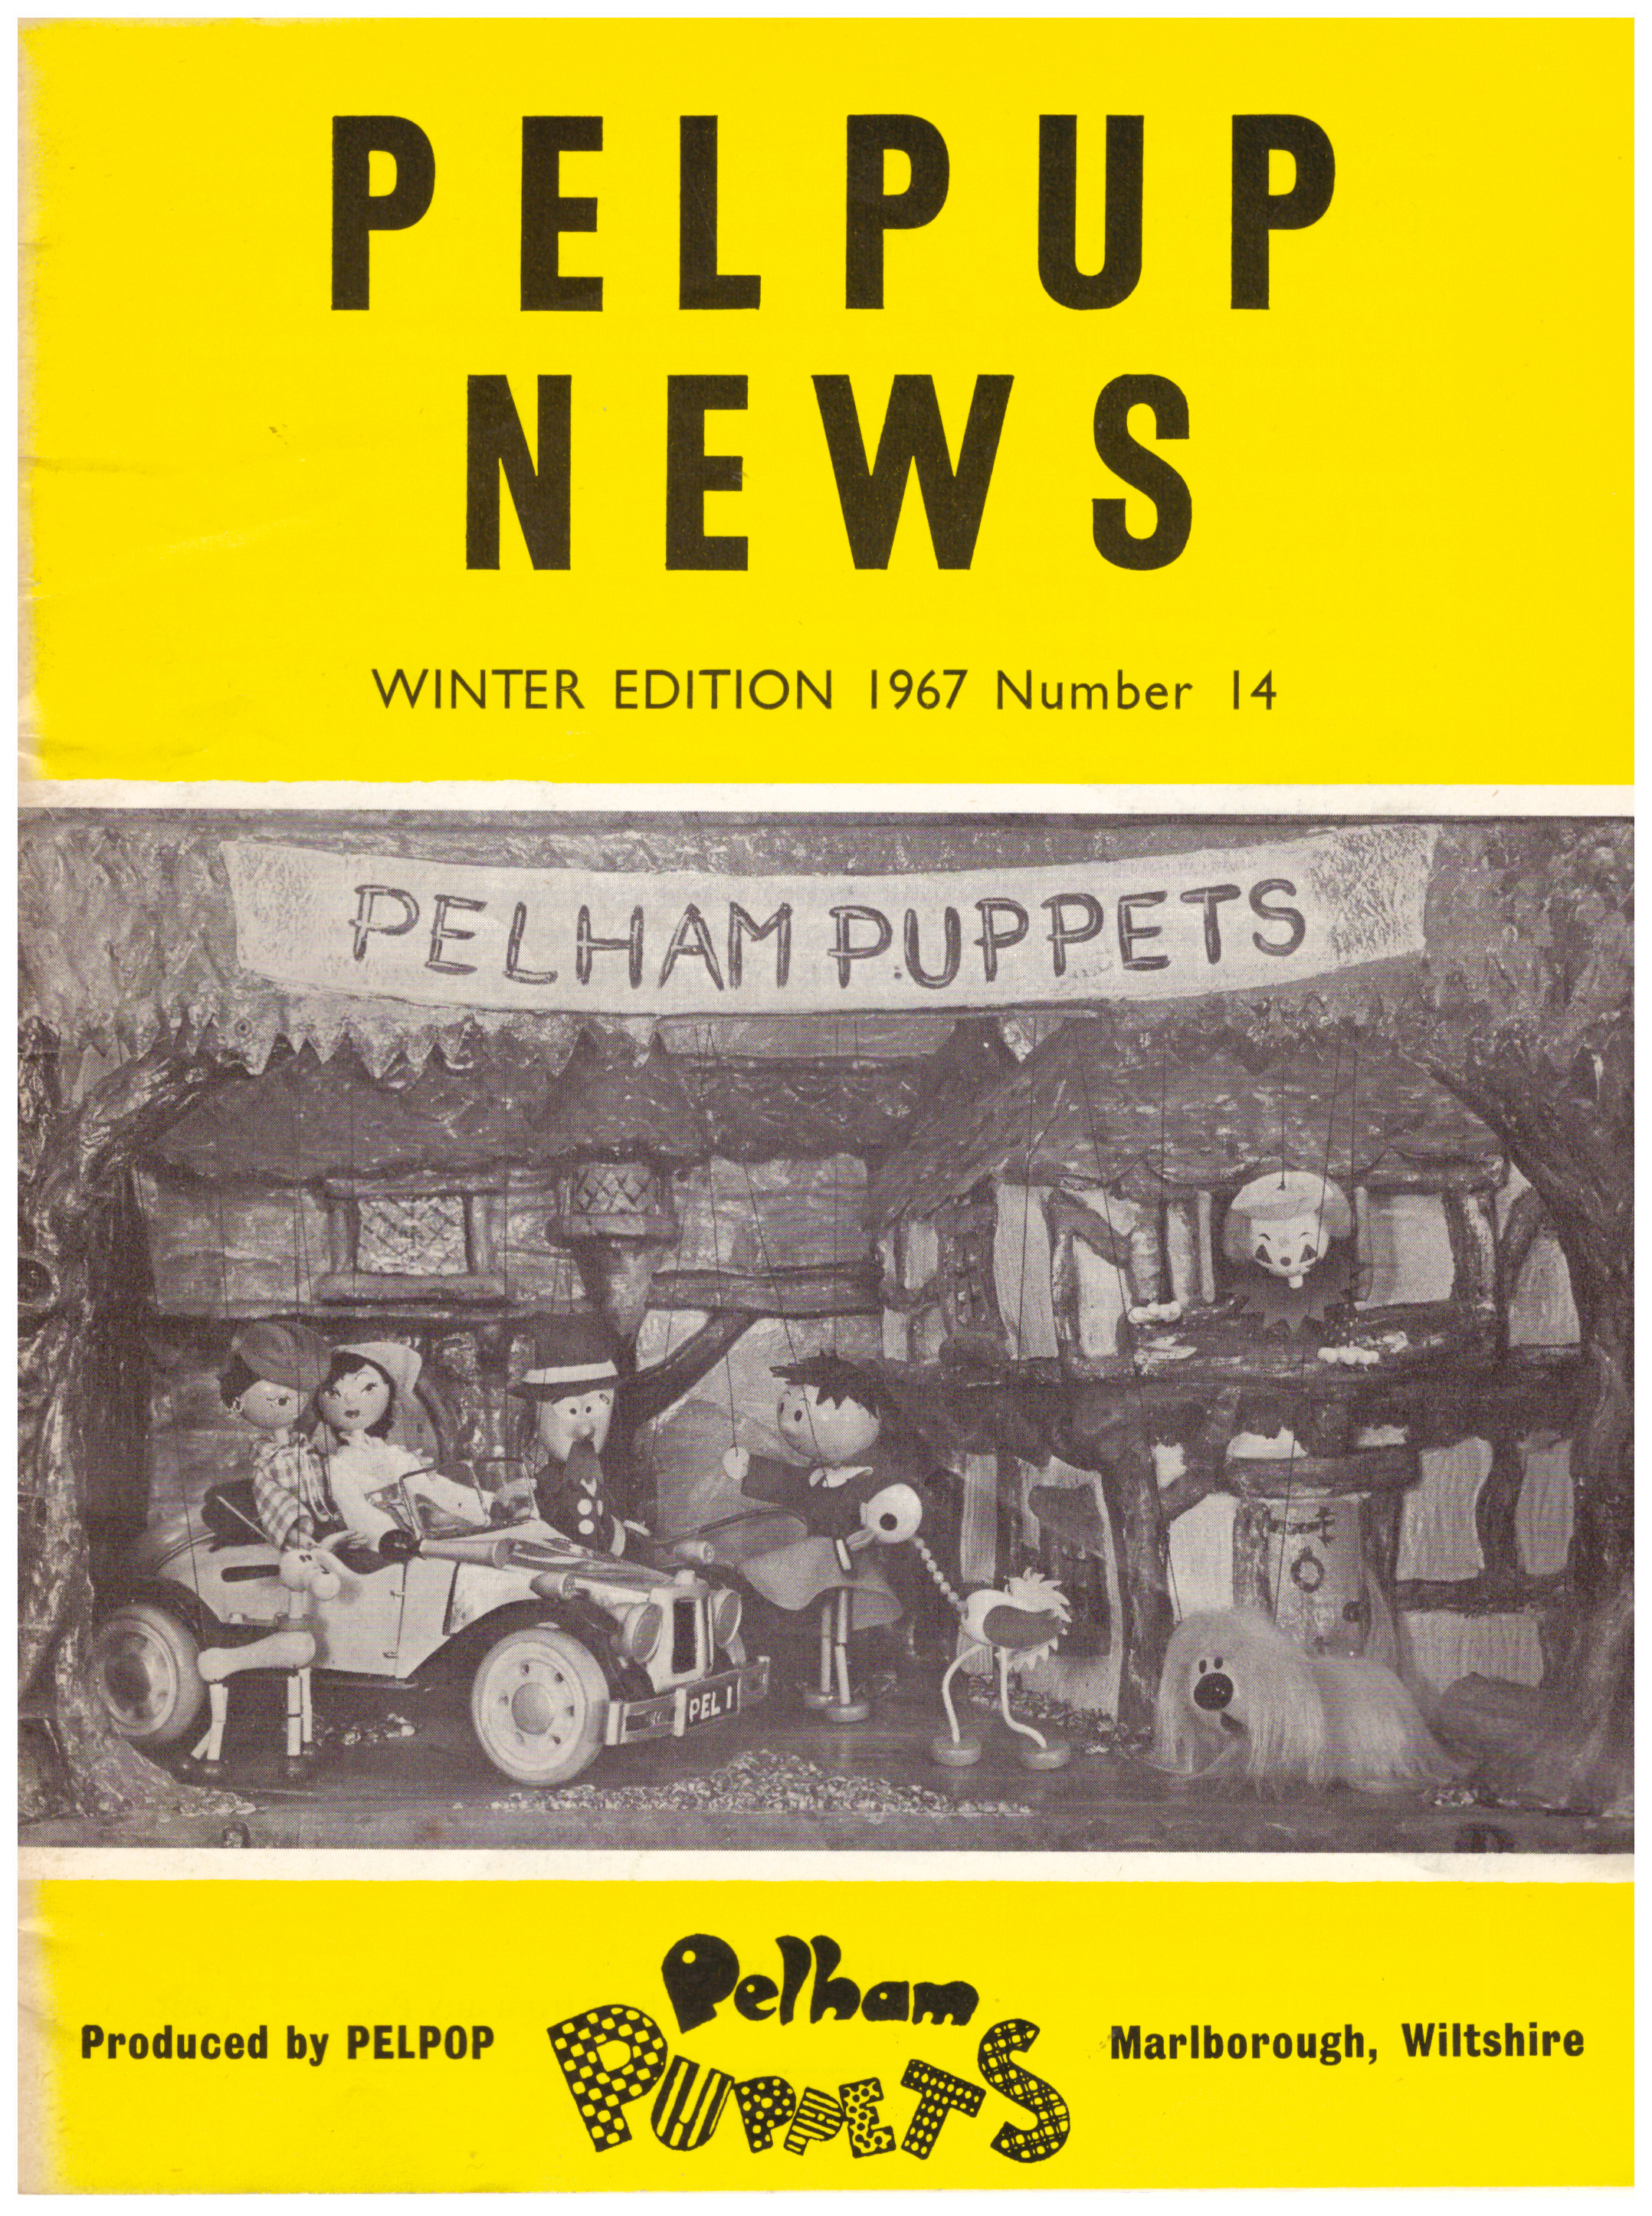 Winter Edition 1967 Number 14